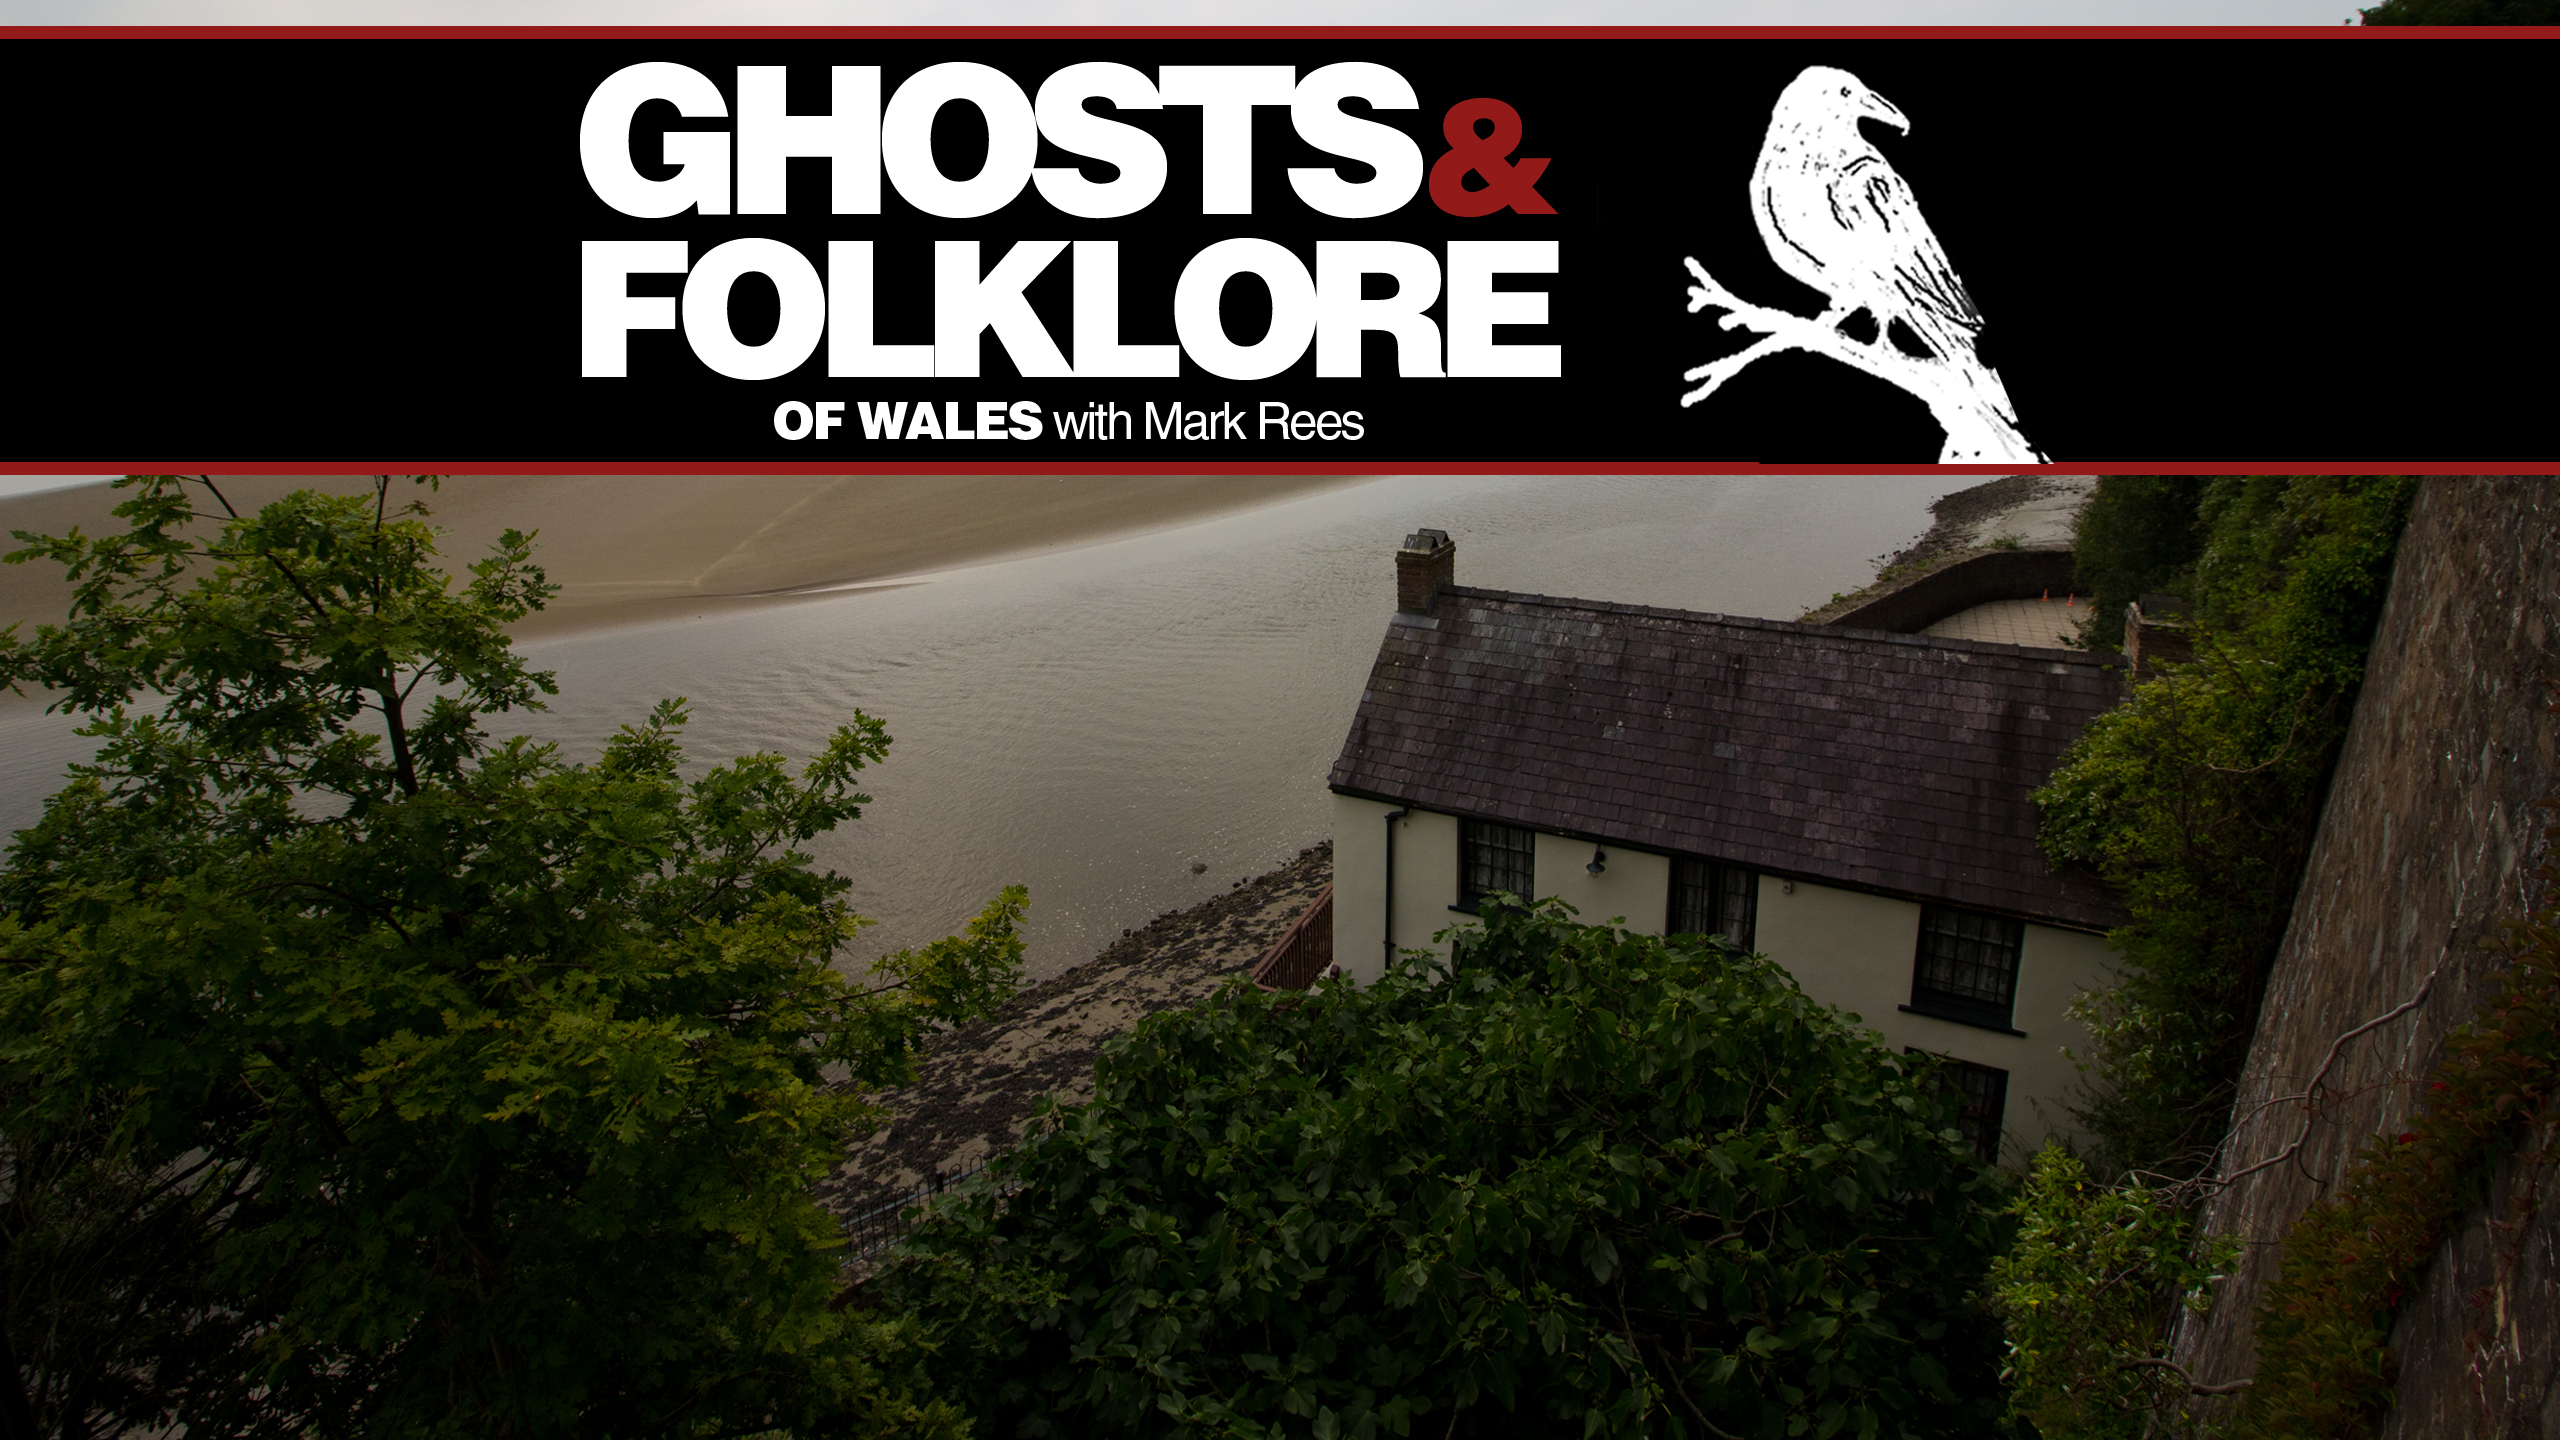 The Ghost of Dylan Thomas, and his many haunts in Wales and the world: Ghosts and Folklore of Wales with Mark Rees podcast EP08